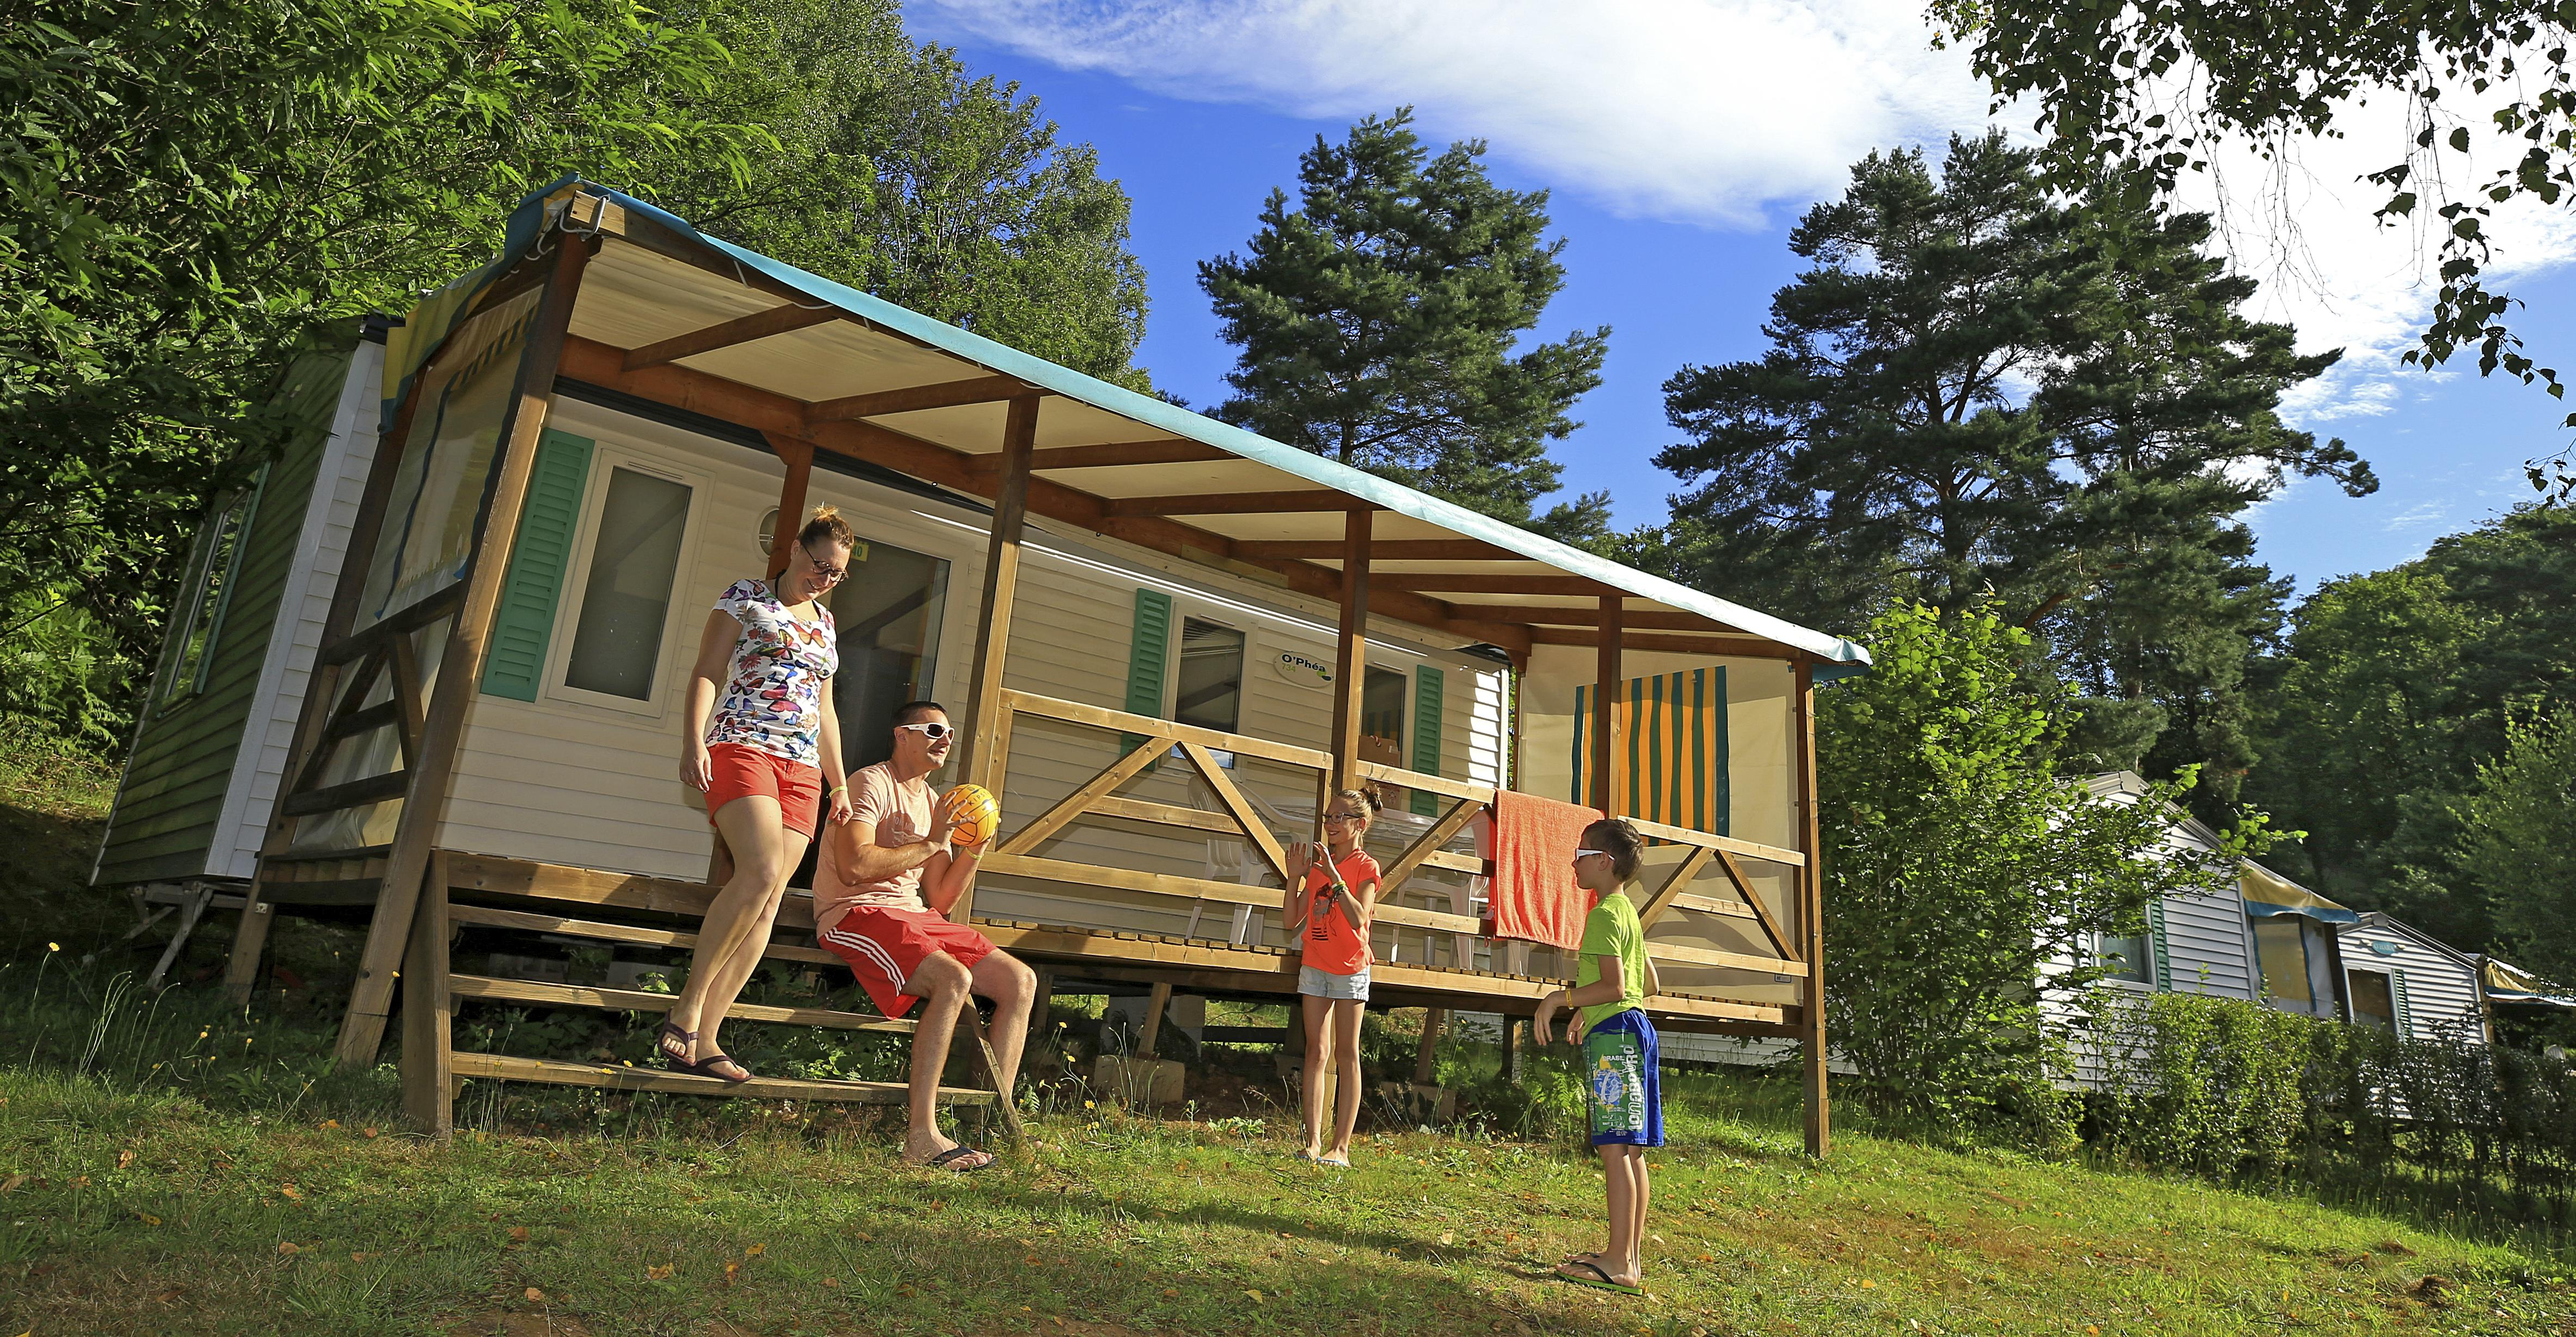 Locatifs - Mobil-Home Family 2 Chambres - Camping Campéole Clairefontaine